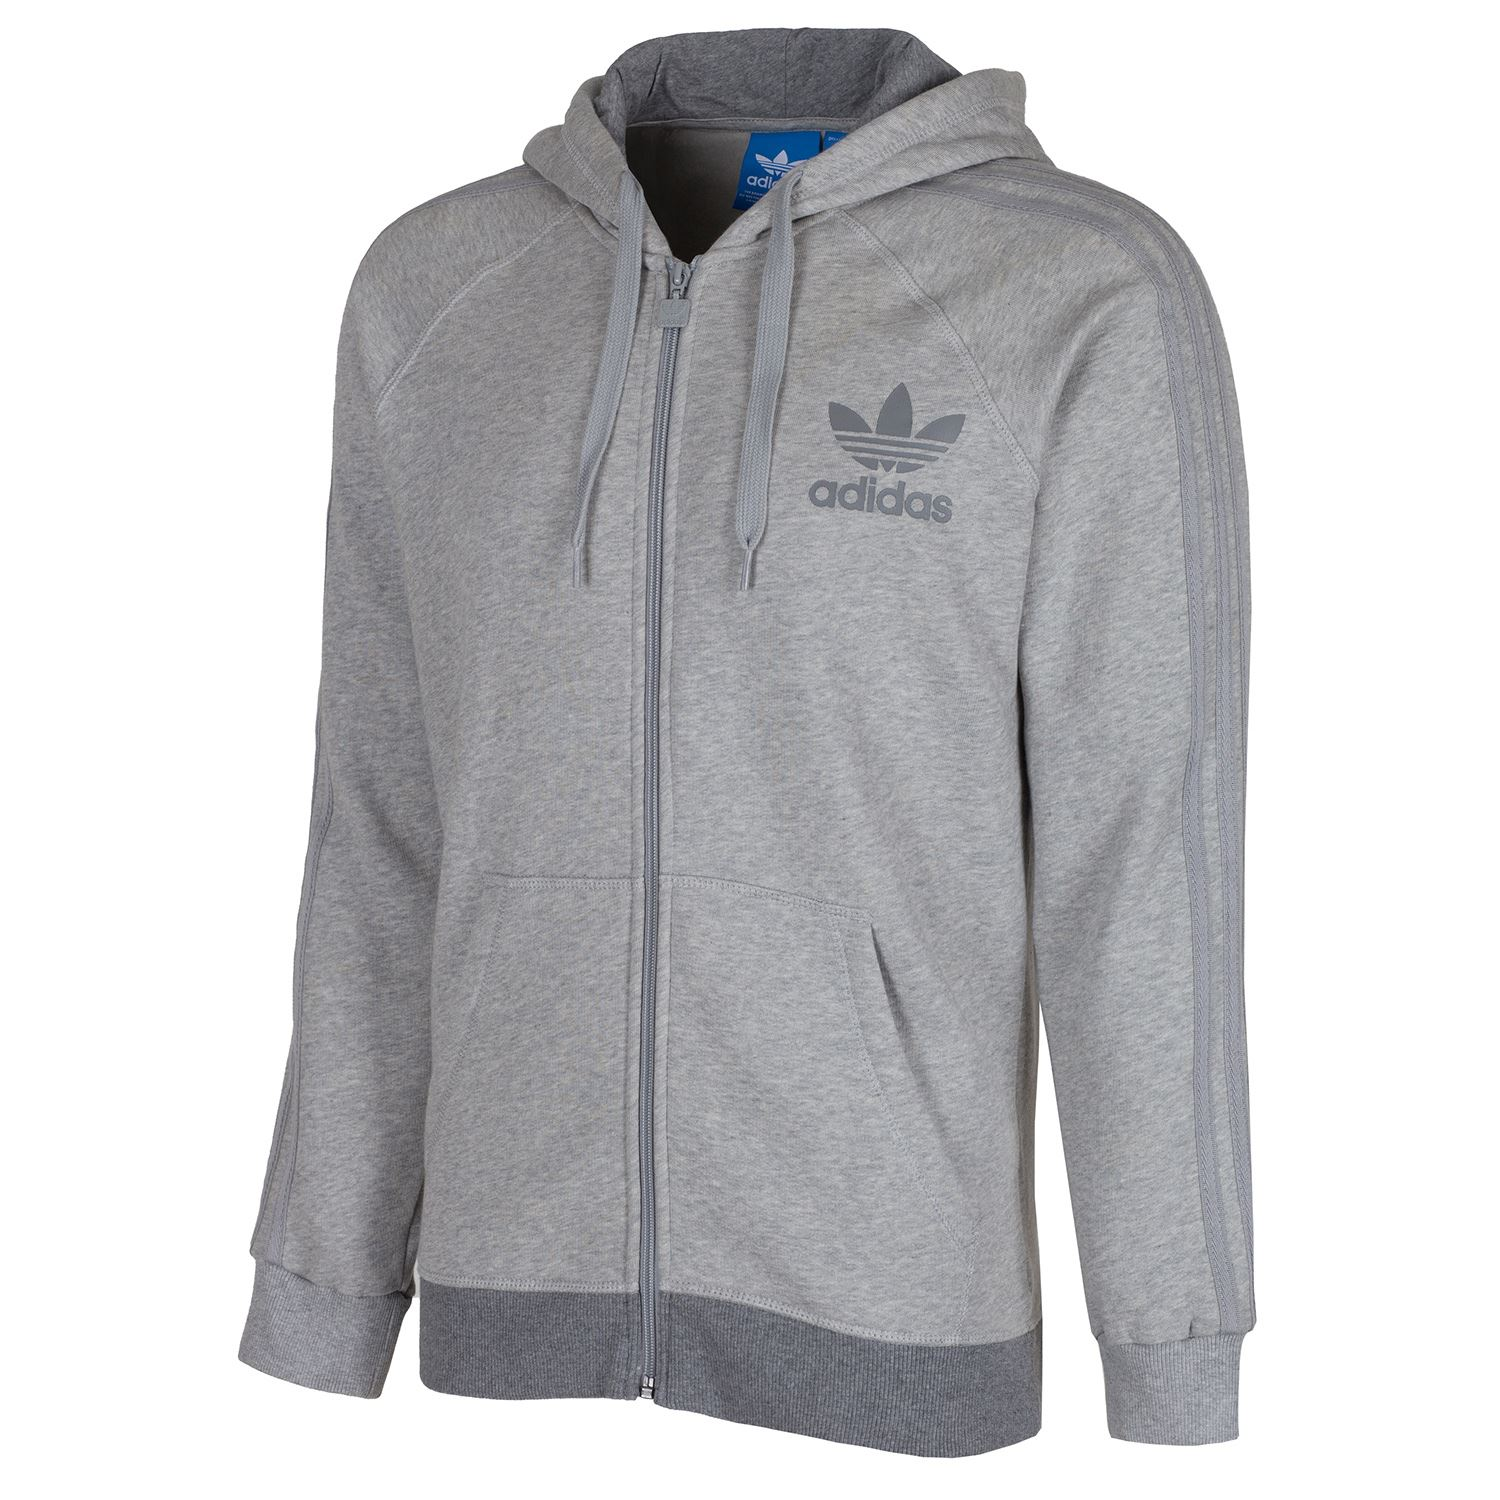 Shop adidas tracksuits, track pants, and jackets for men and women. Browse a variety of colors of tracksuits at bestsupsm5.cf